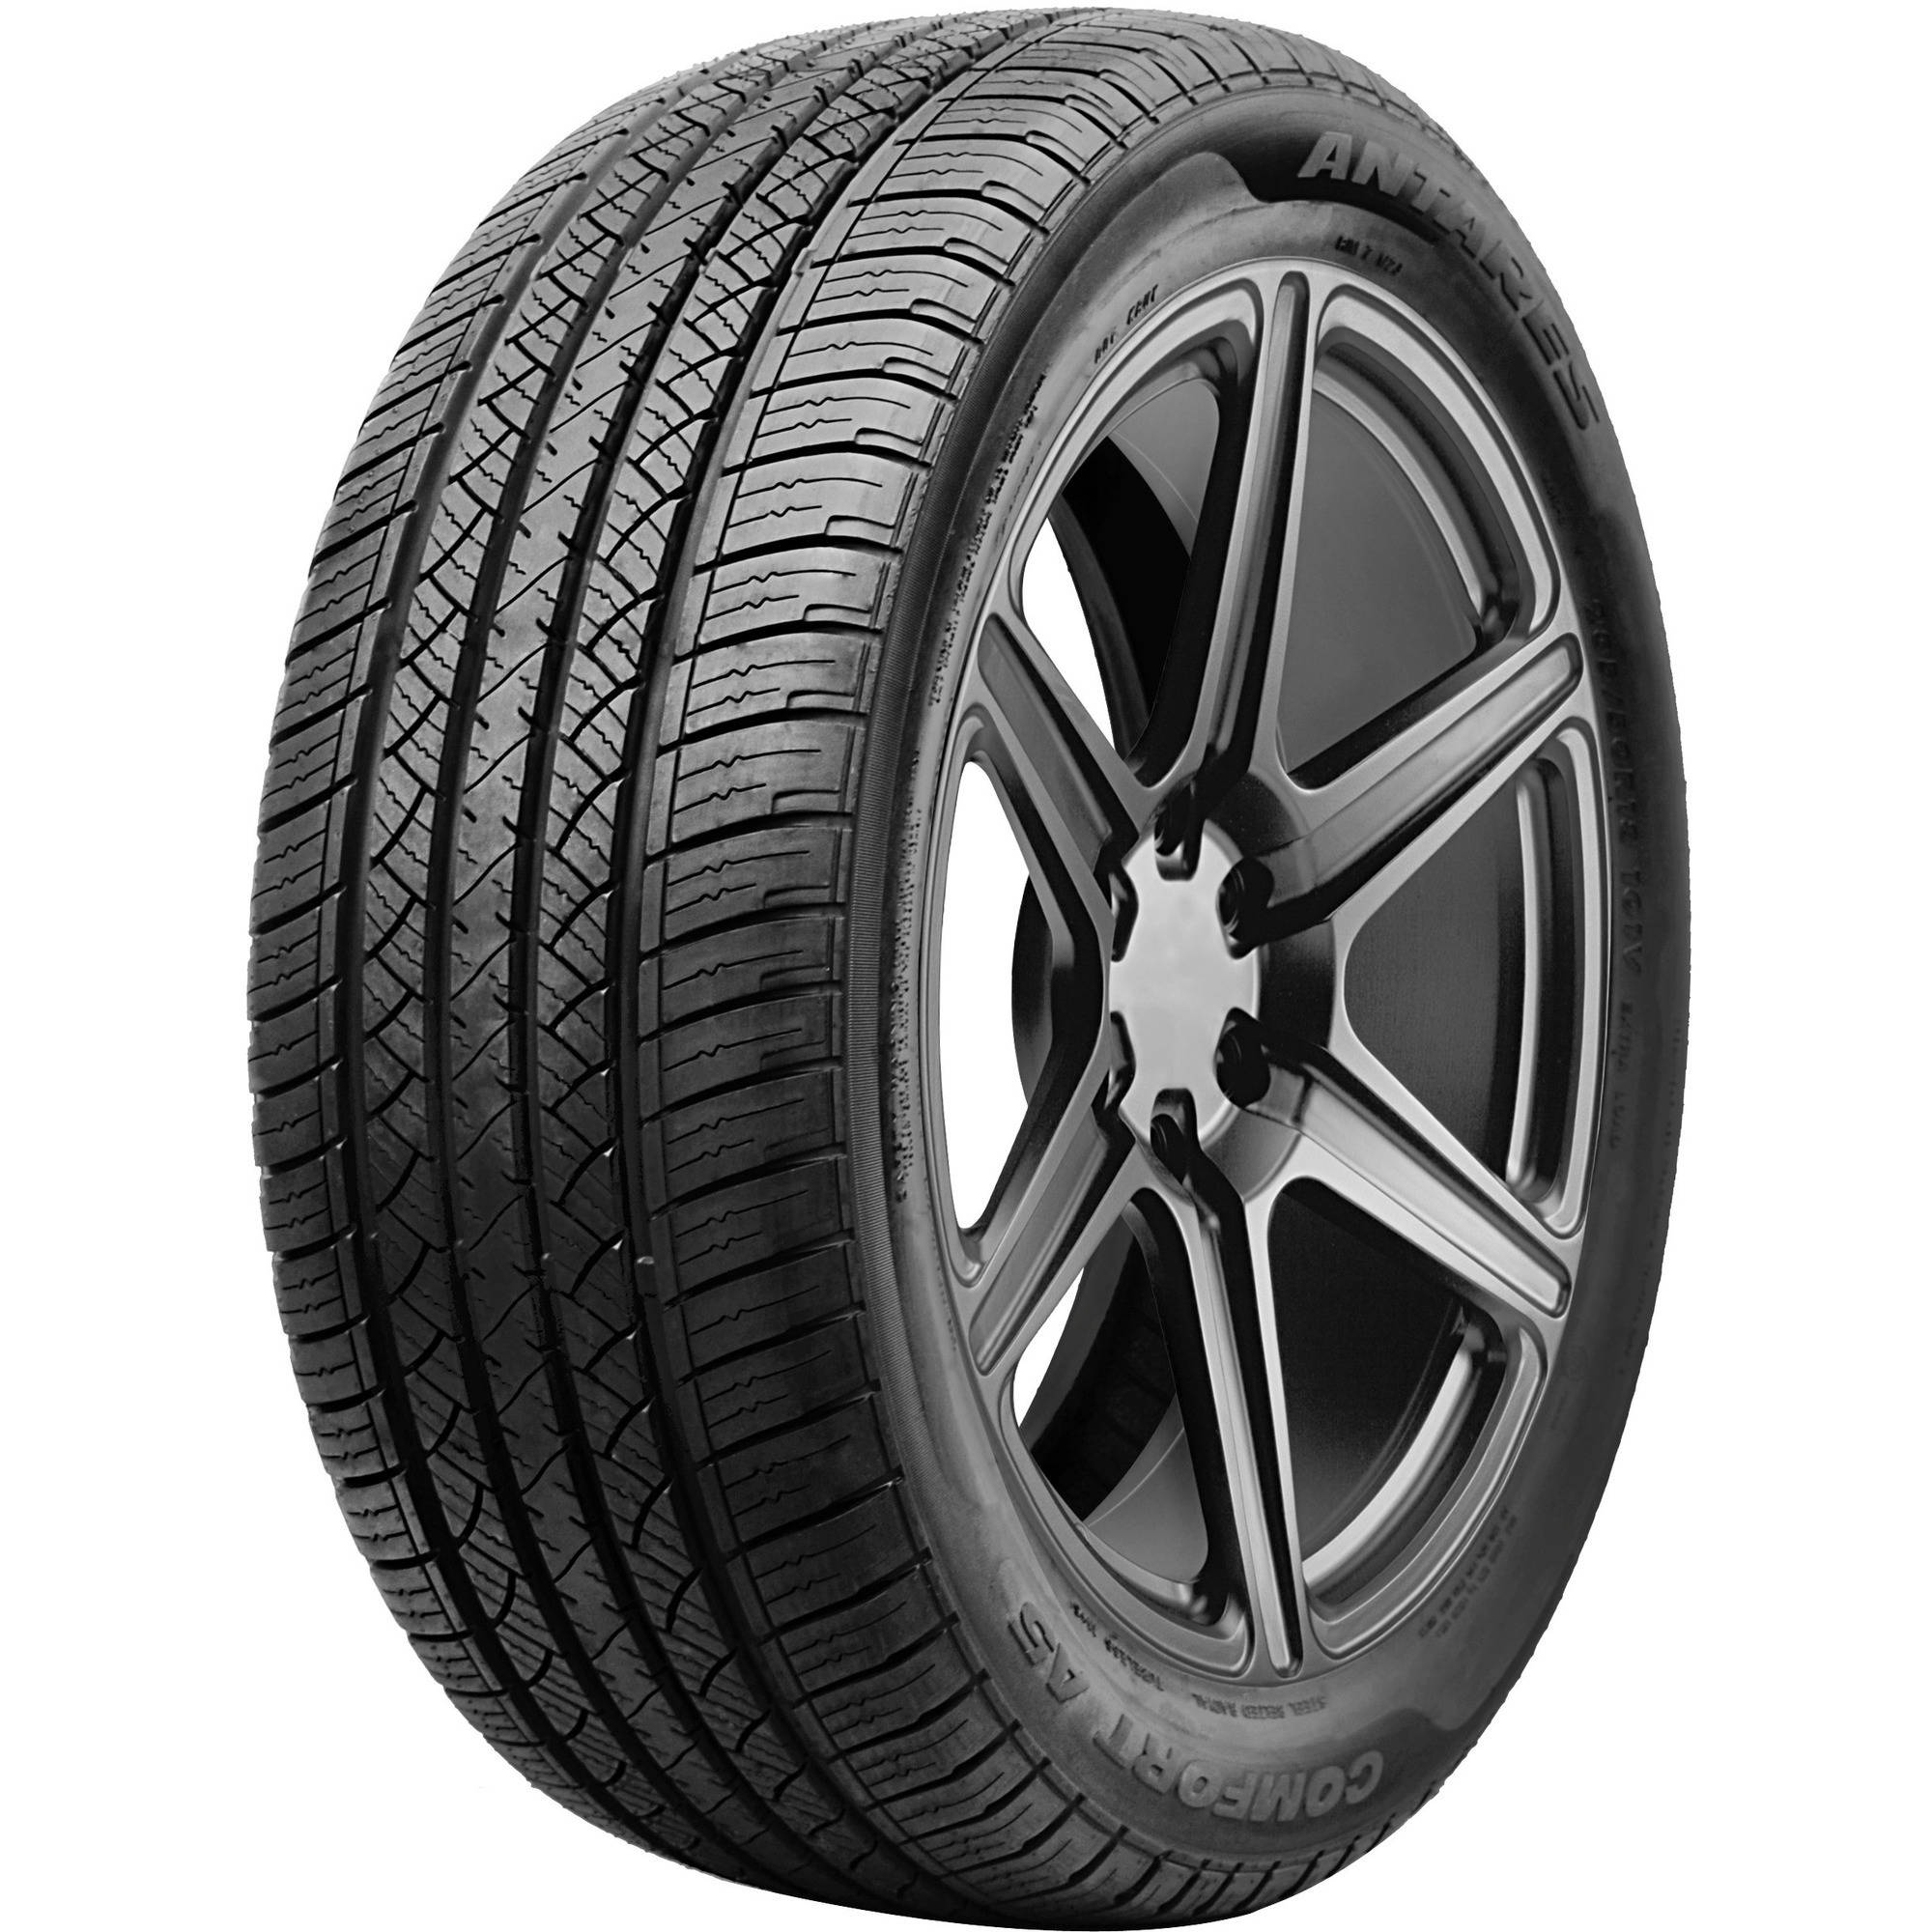 Antares Comfort A5 235 65R18 106S Tire by Antares